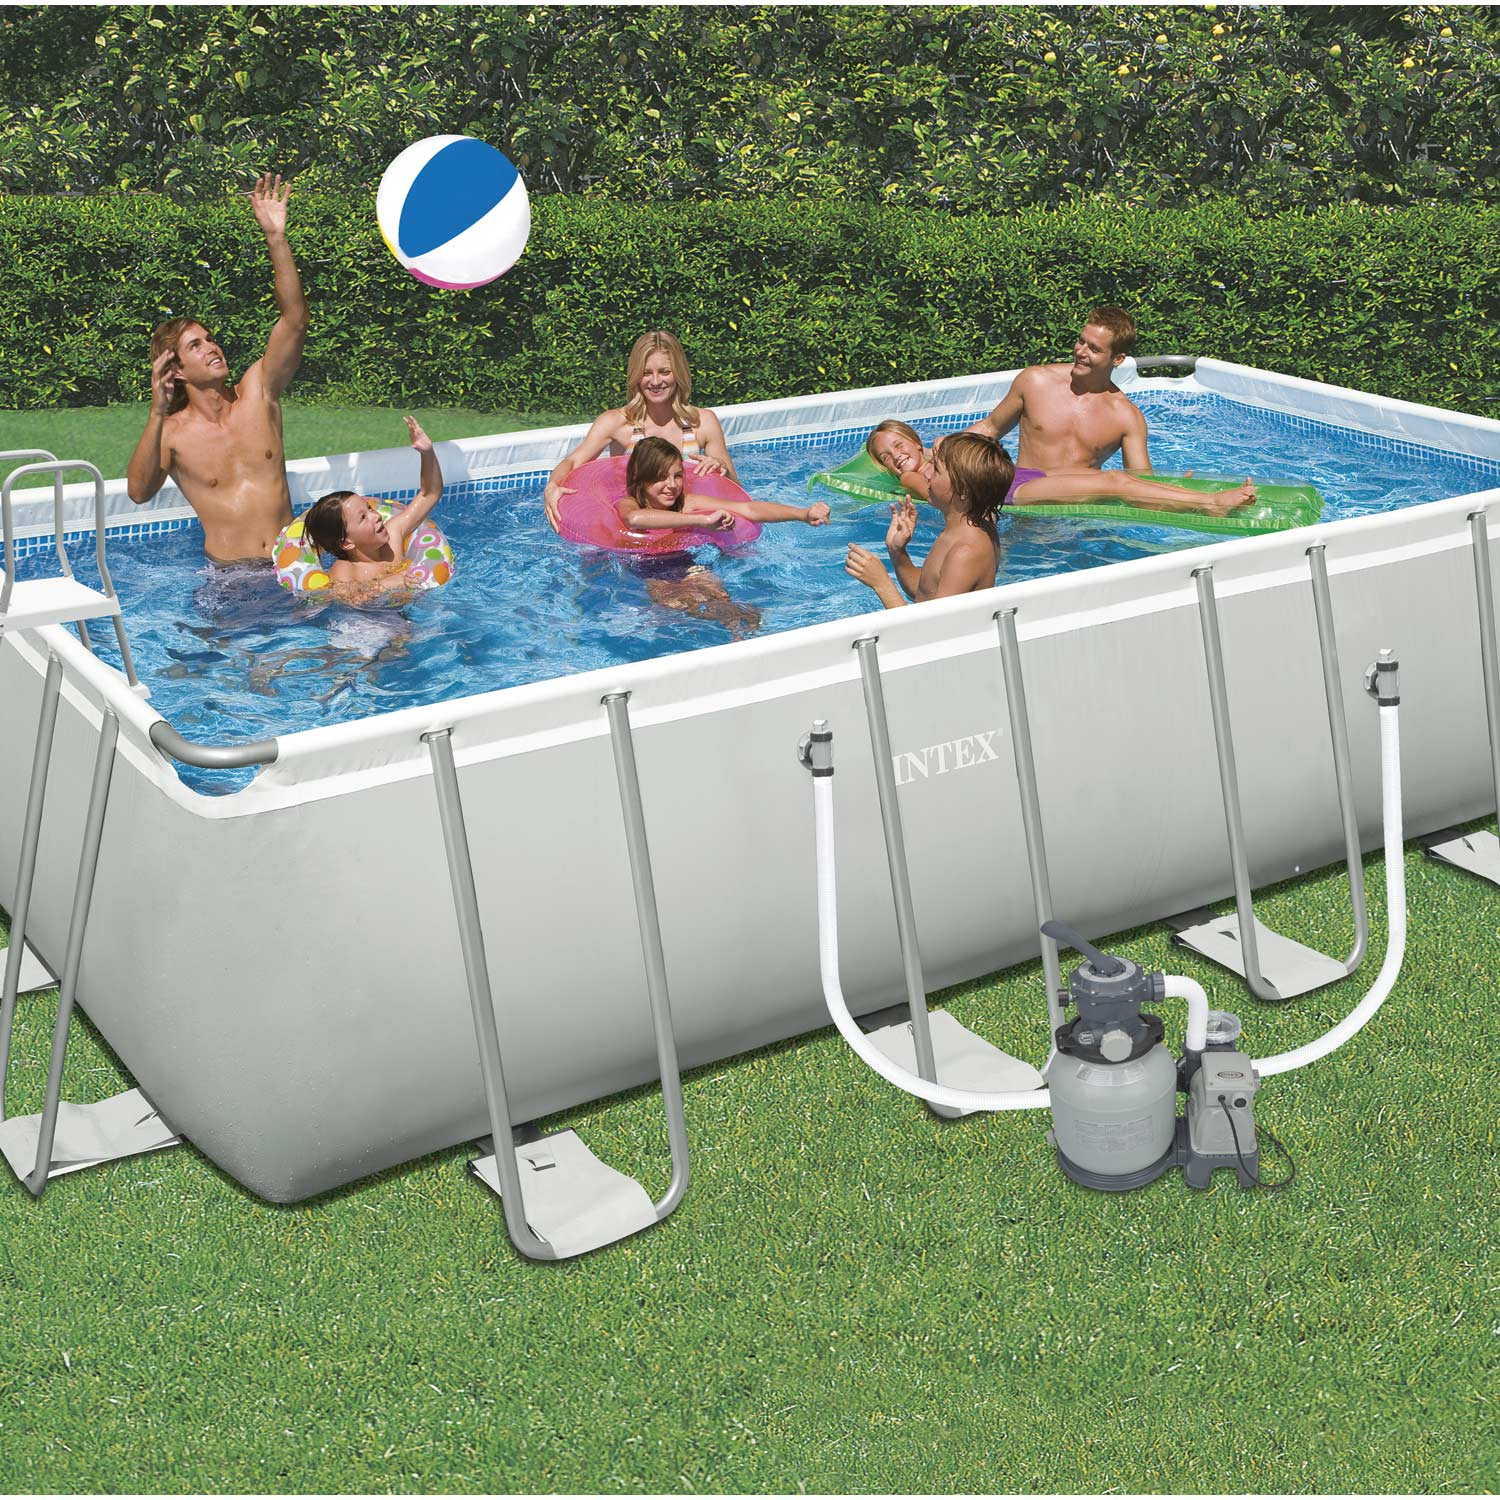 Piscine hors sol autoportante tubulaire ultra silver intex for Piscine hors sol lyon